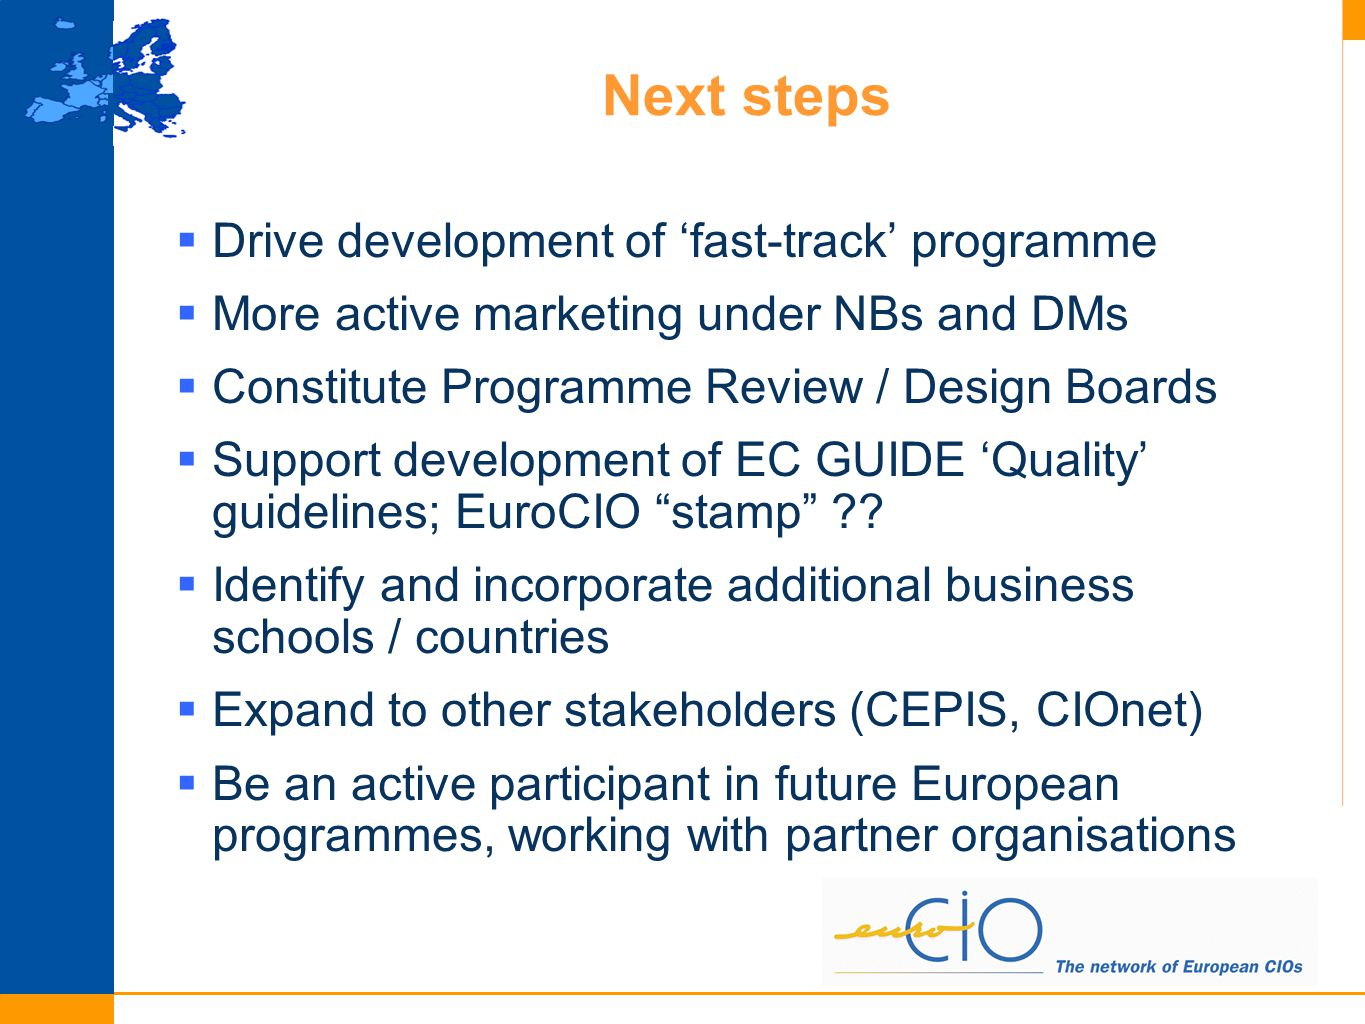  AIM: building the European CISO (Corporate Information Security Officer) program.